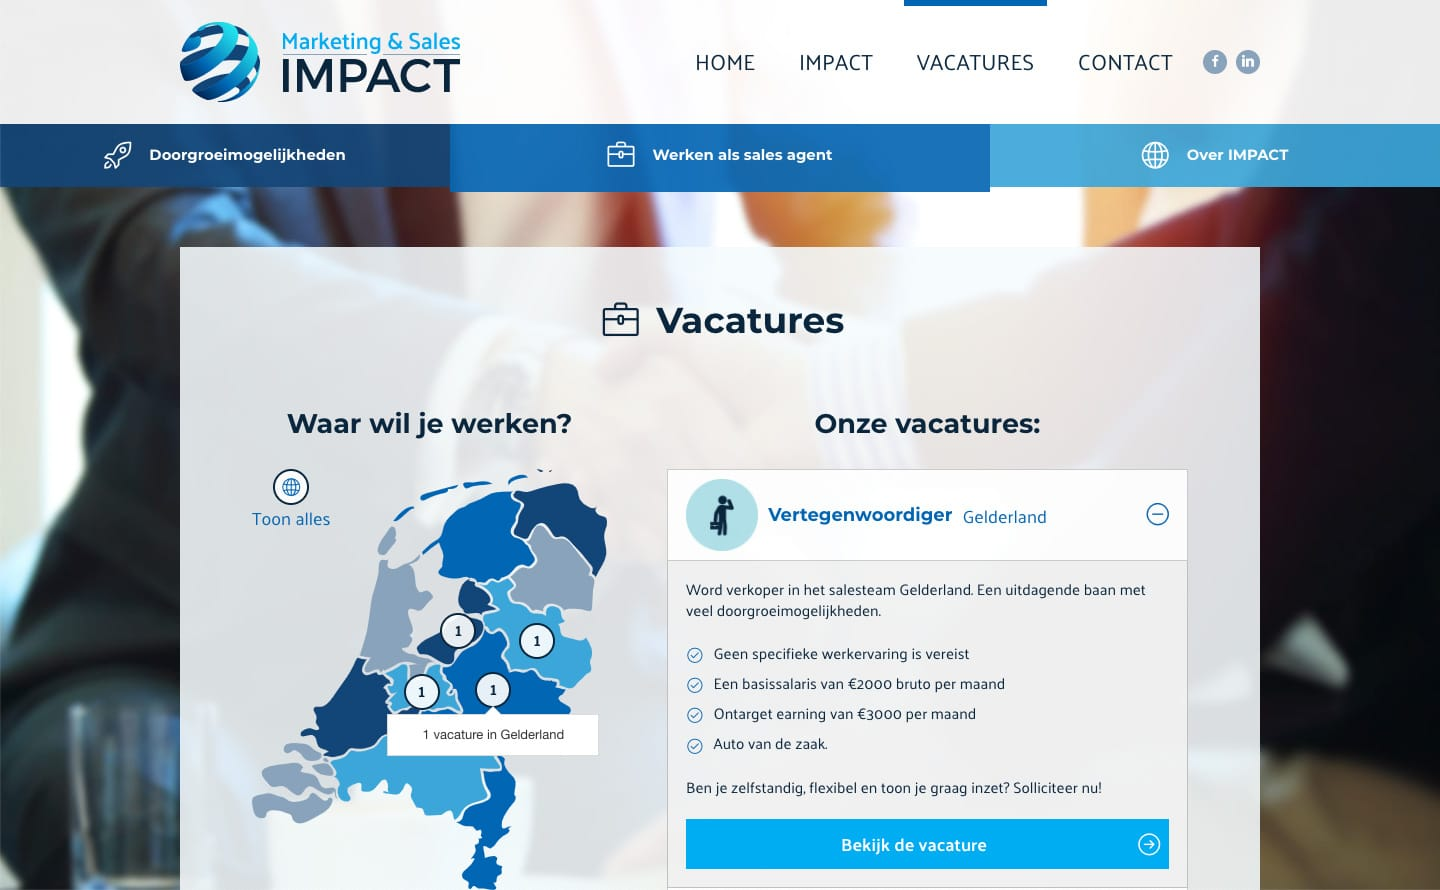 De vacaturepagina op de website van Marketing & Sales Impact